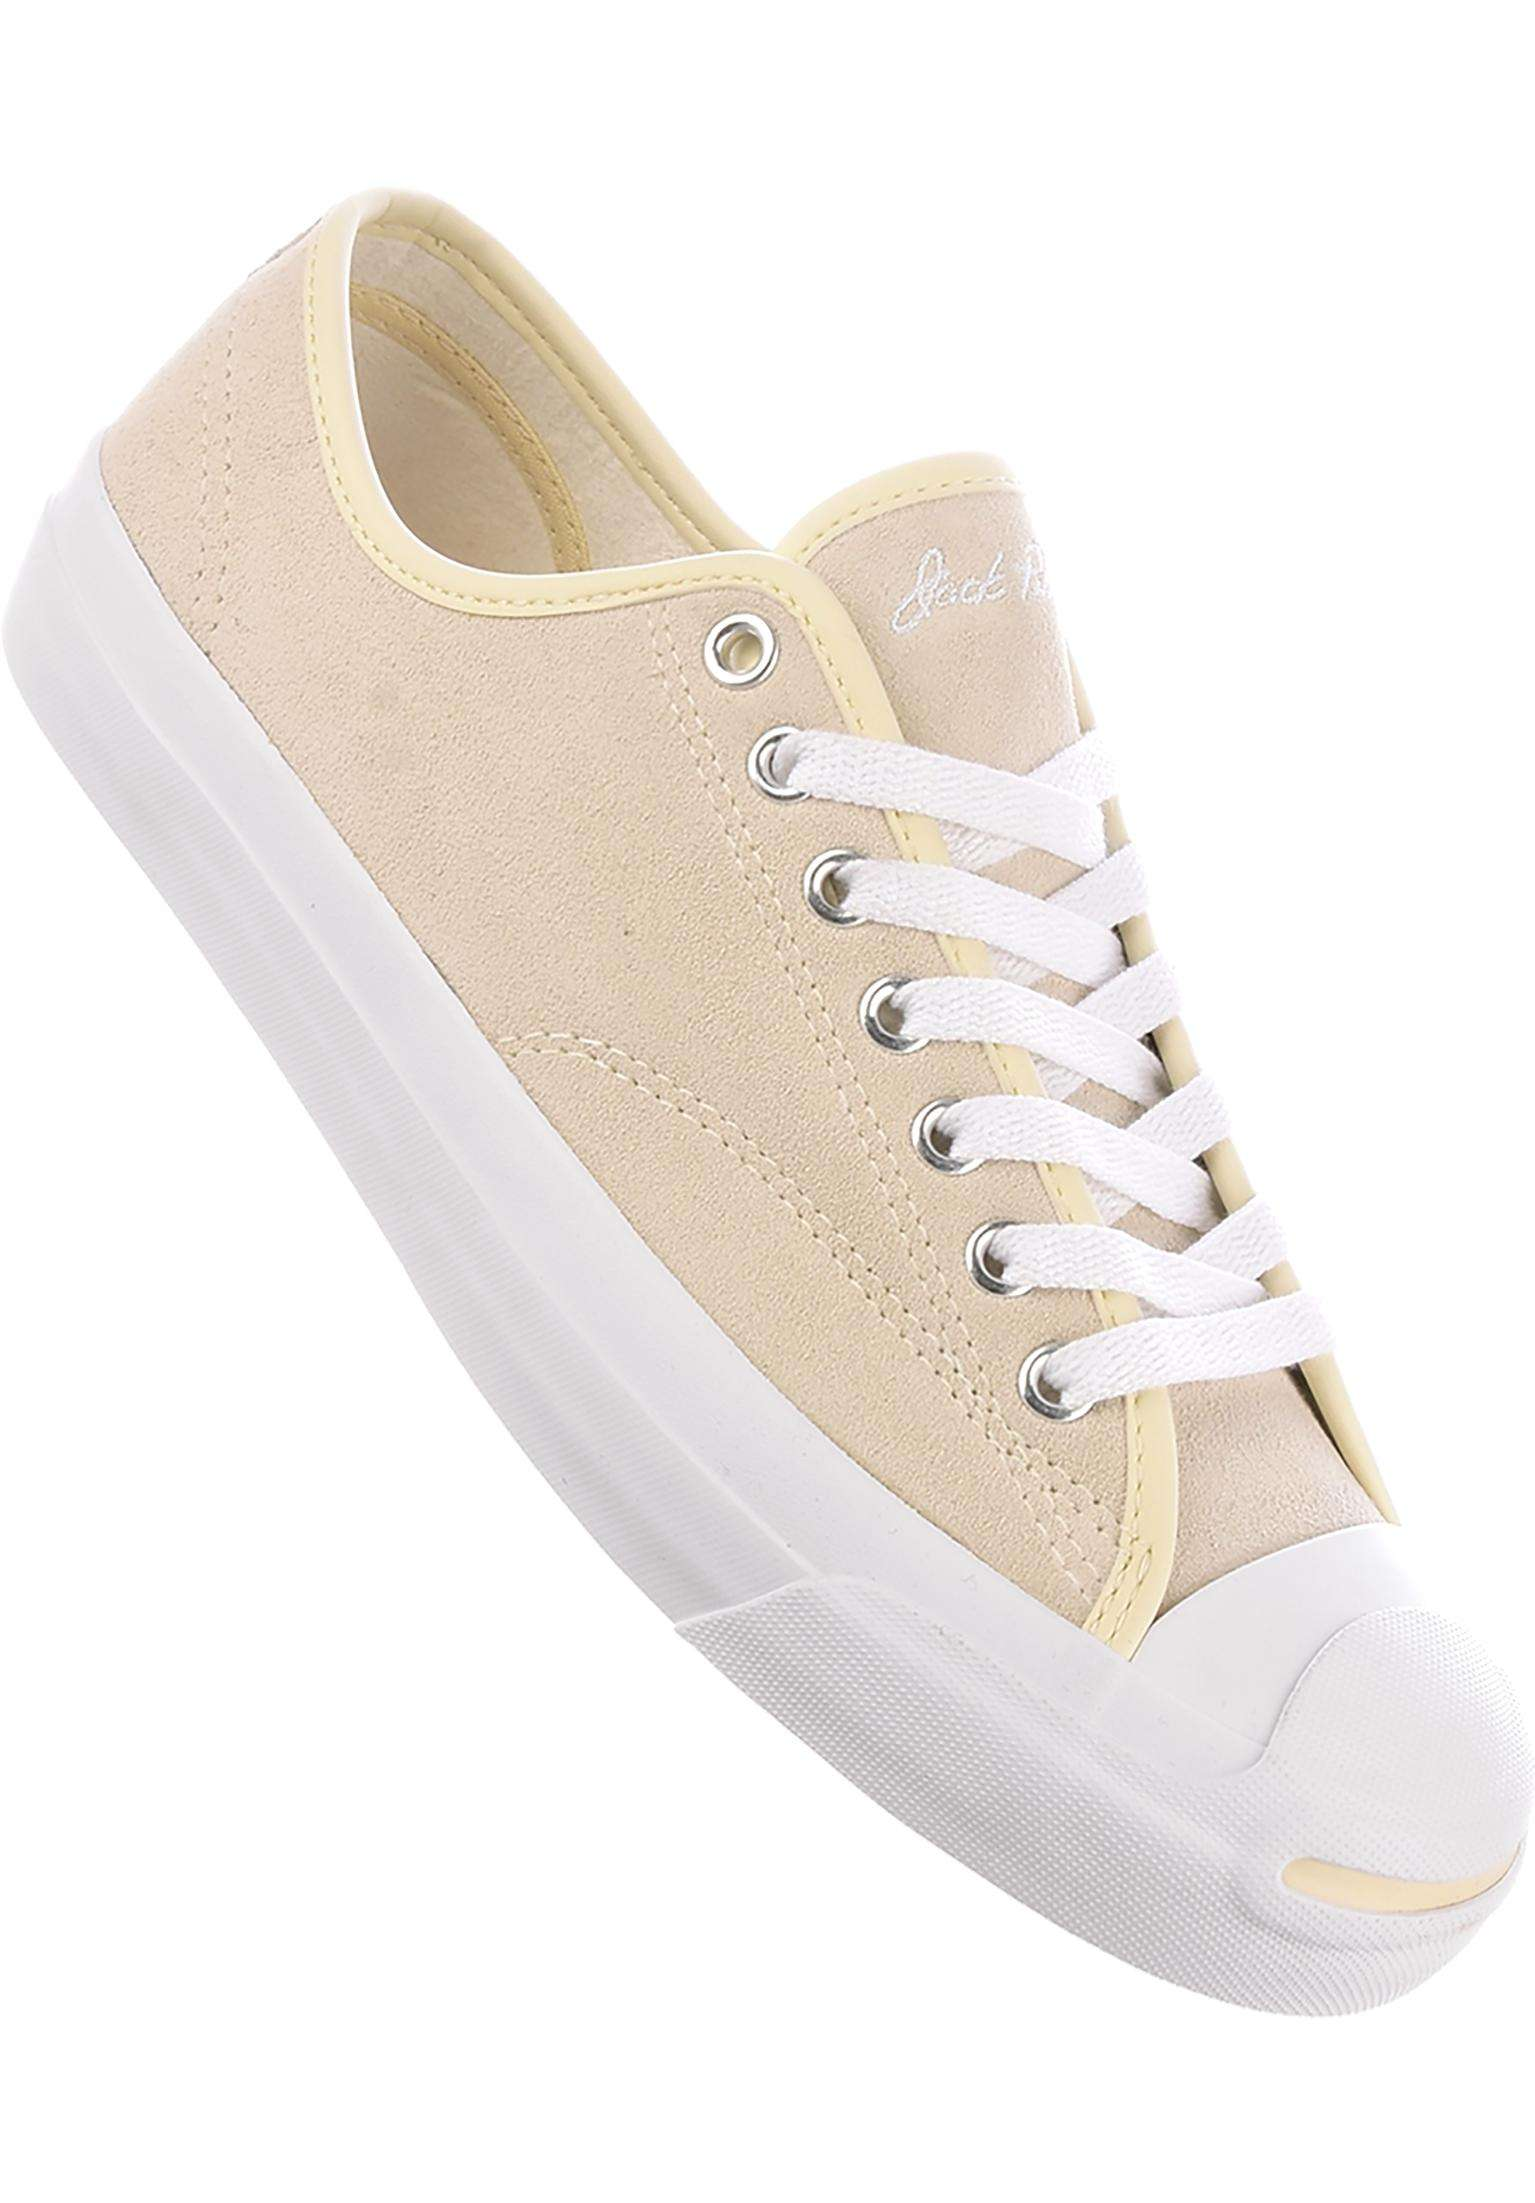 8b0f8f83a08a Jack Purcell Pro Ox Converse CONS All Shoes in natural-white for Men ...